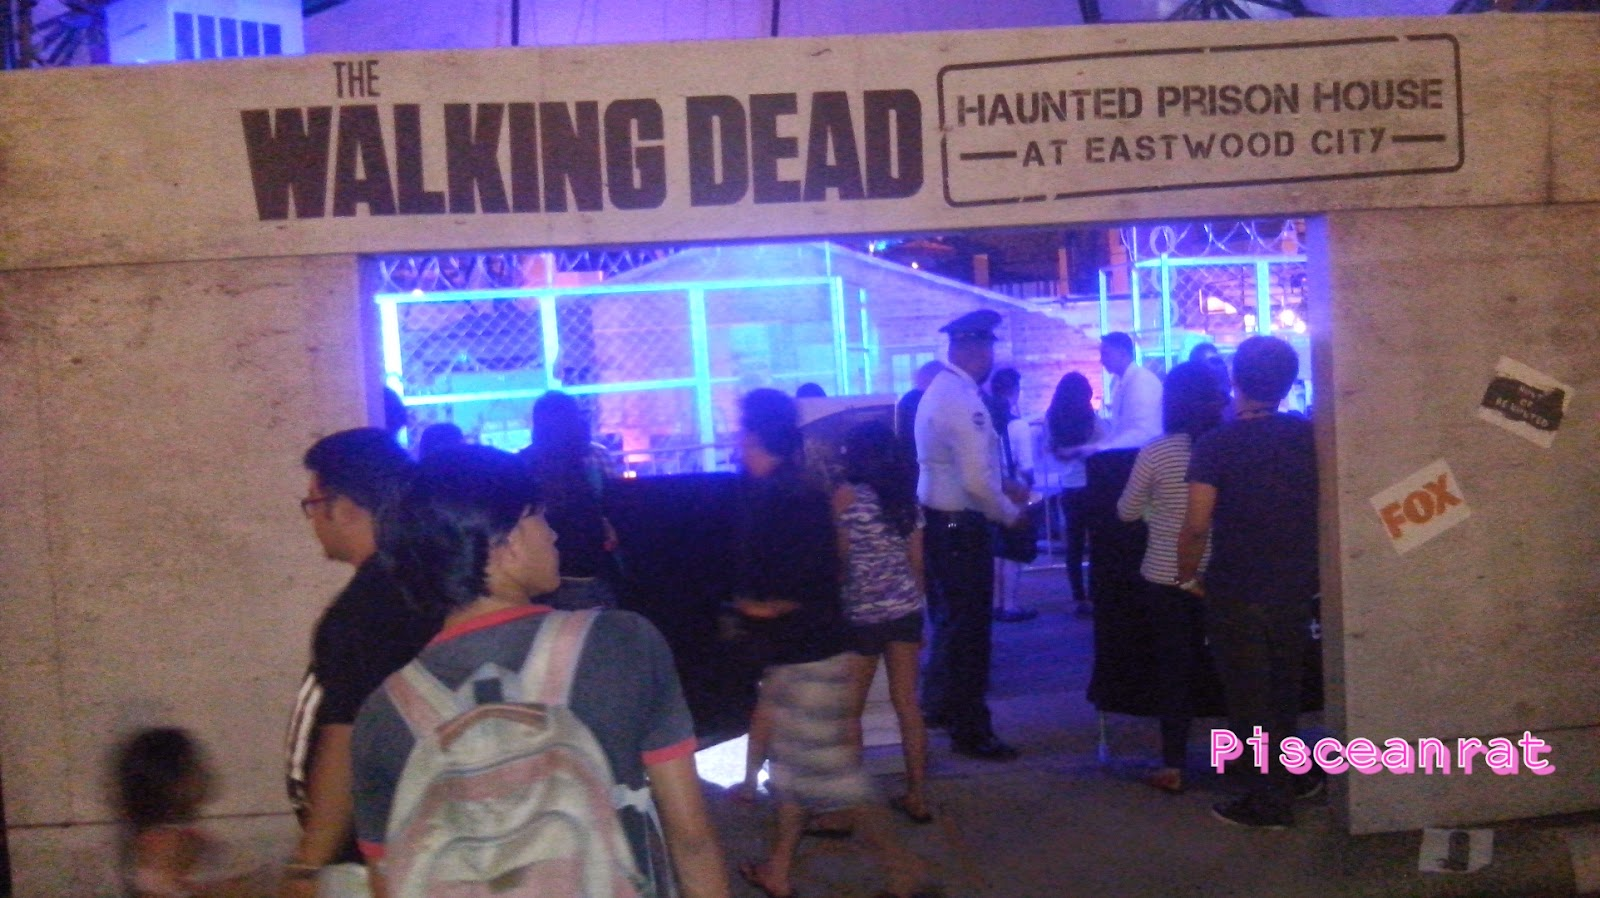 The Walking Dead: Haunted Prison House in Eastwood!